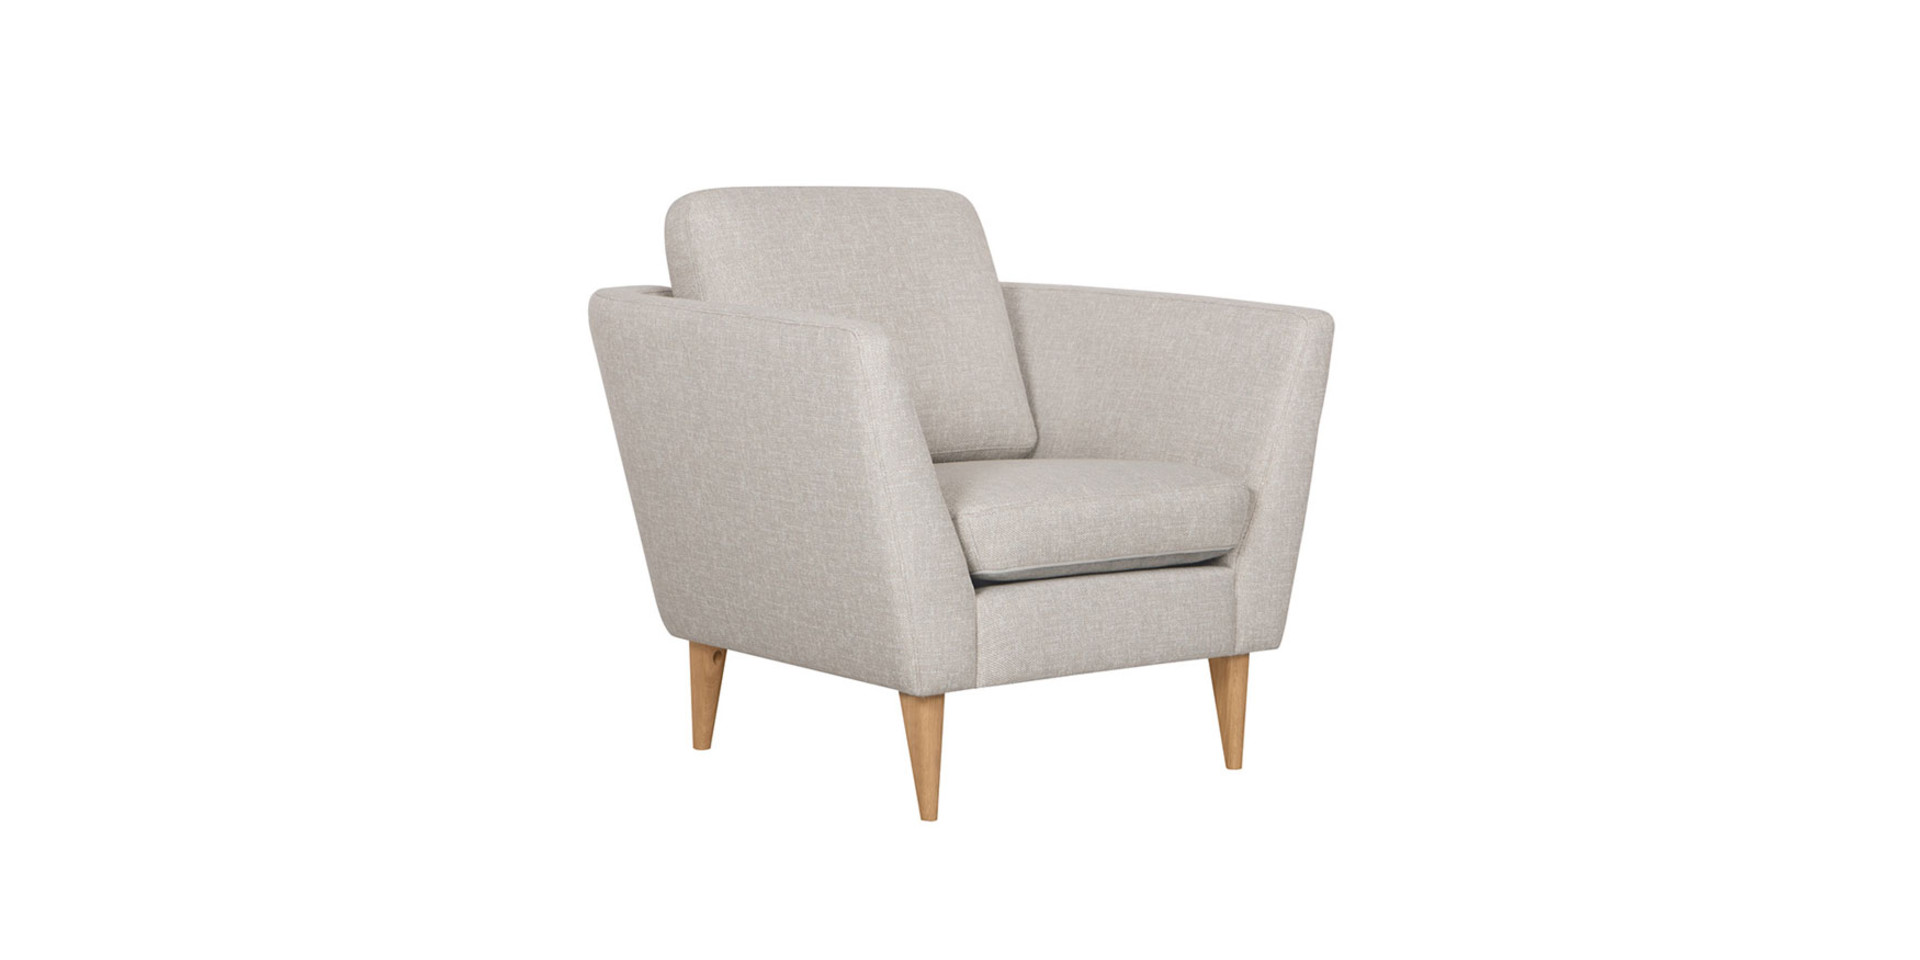 sits-mynta-fauteuil-armchair_nancy5_light_grey_2